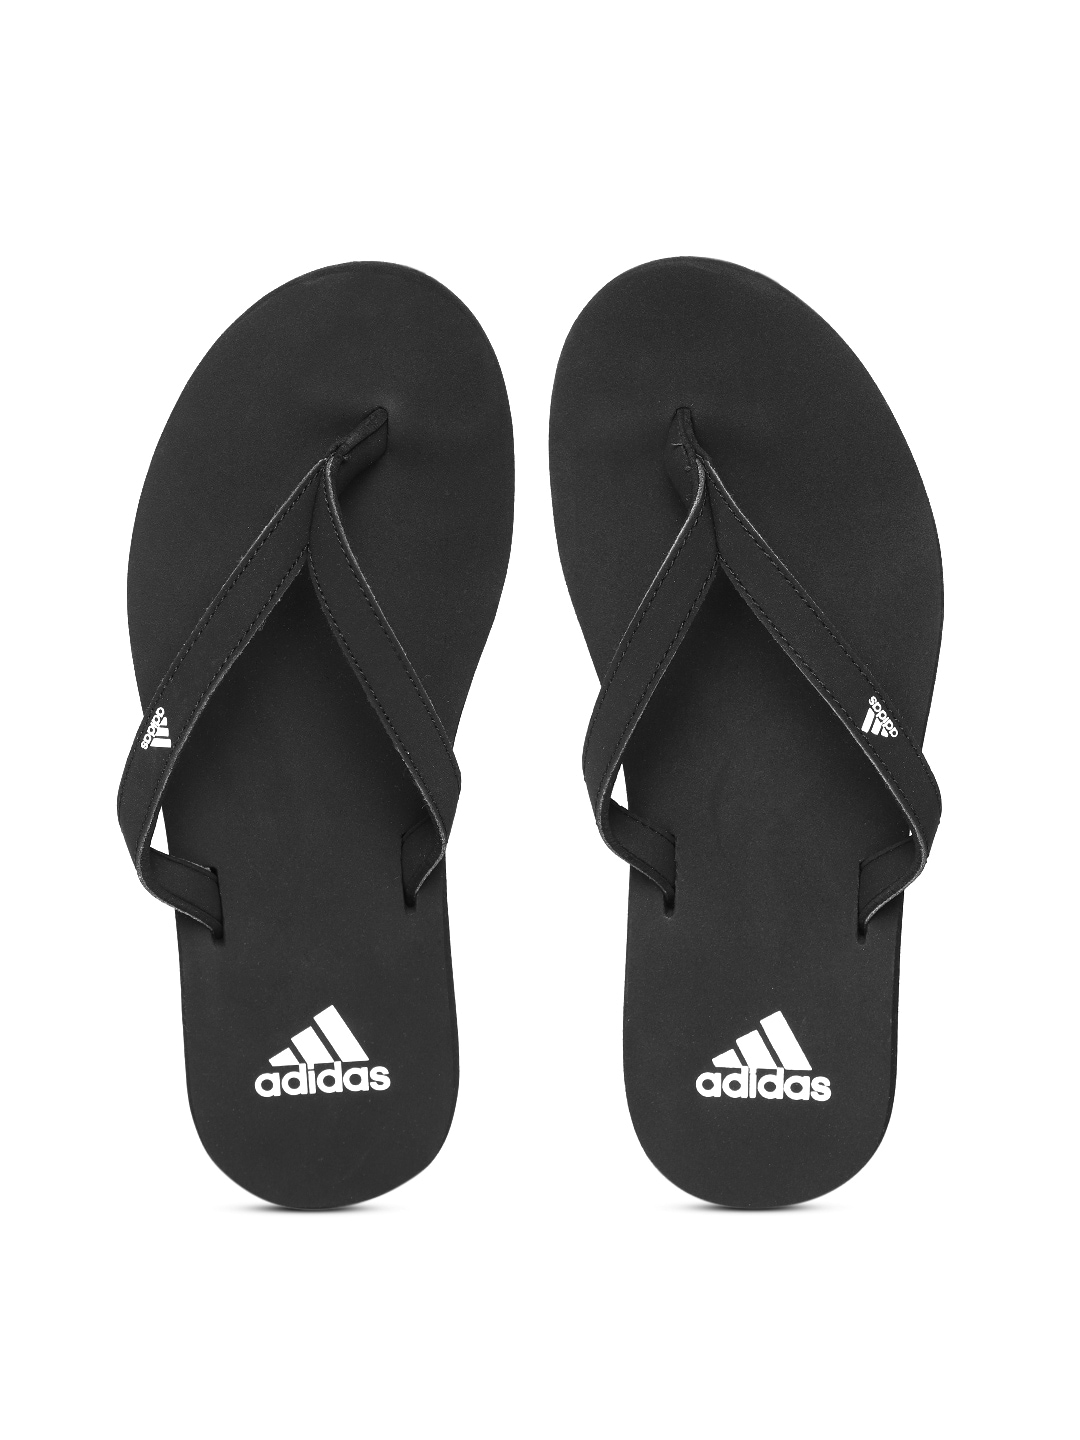 118d97698 Adidas Wristbands Flip Flops Sweatshirts - Buy Adidas Wristbands Flip Flops  Sweatshirts online in India